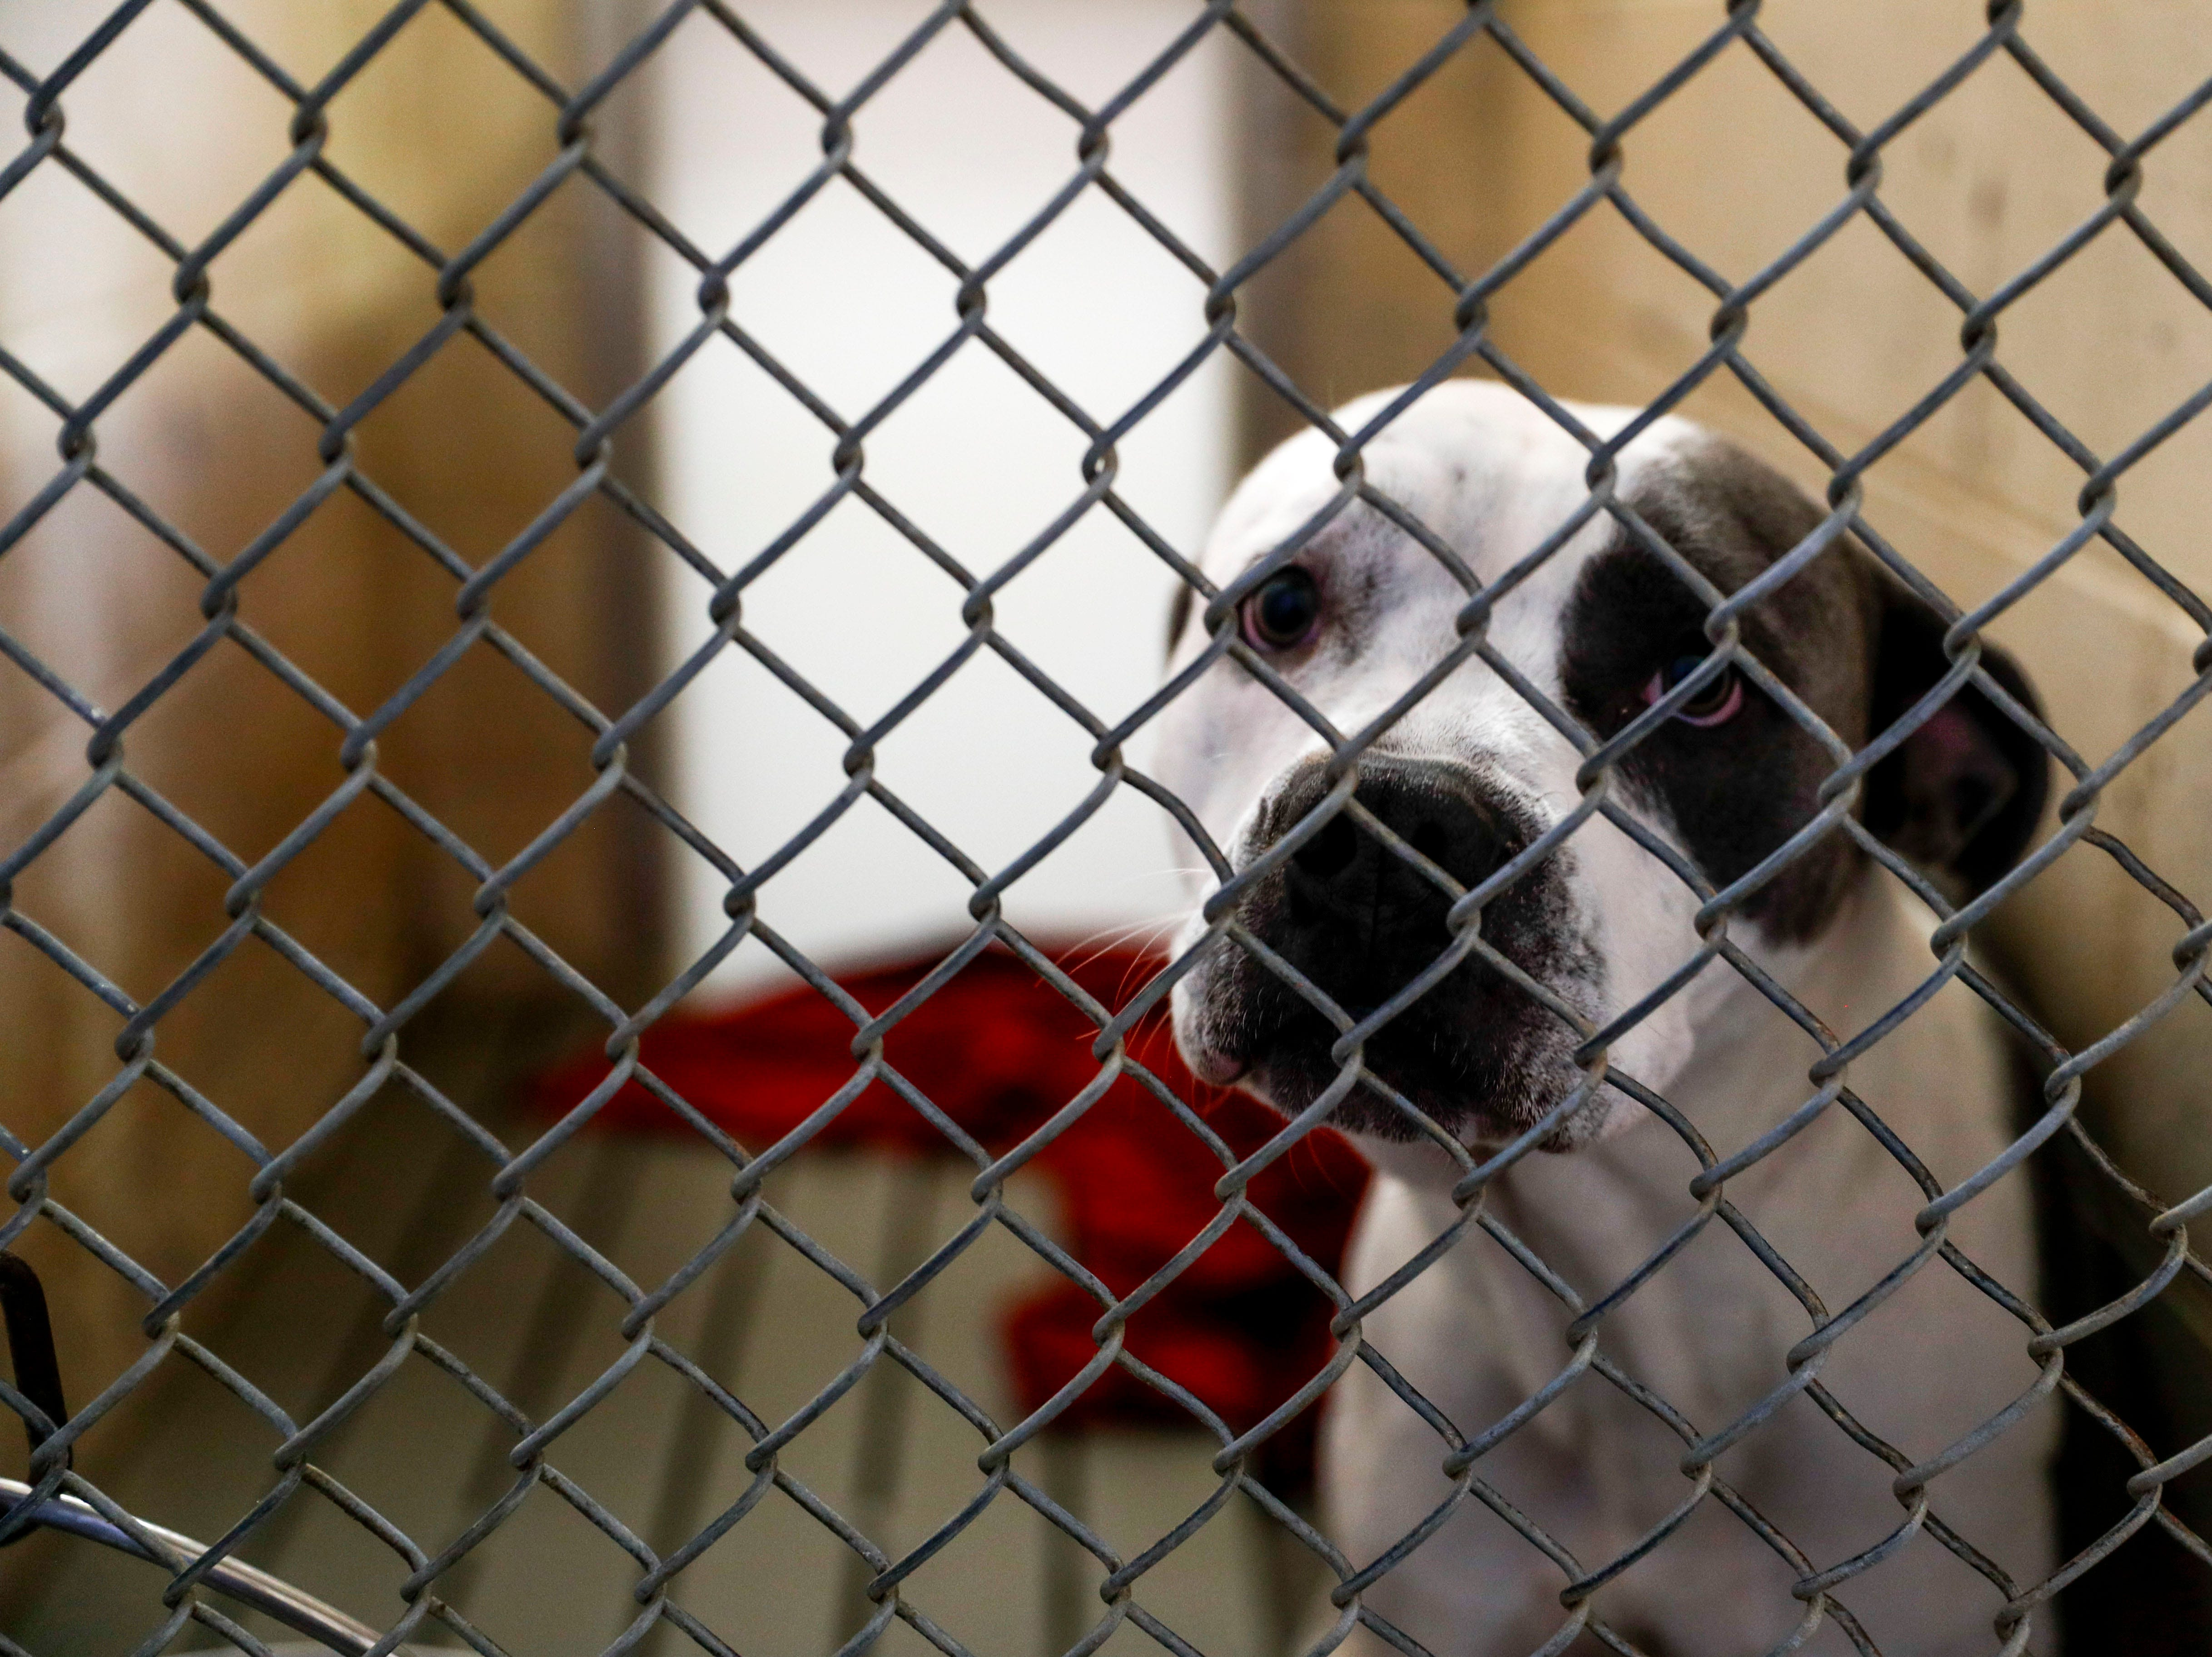 Newbie, a pit bull terrier, looks out of his kennel while waiting for a new owner at Montgomery County Animal Care and Control in Clarksville, Tenn., on Wednesday, March 13, 2019.